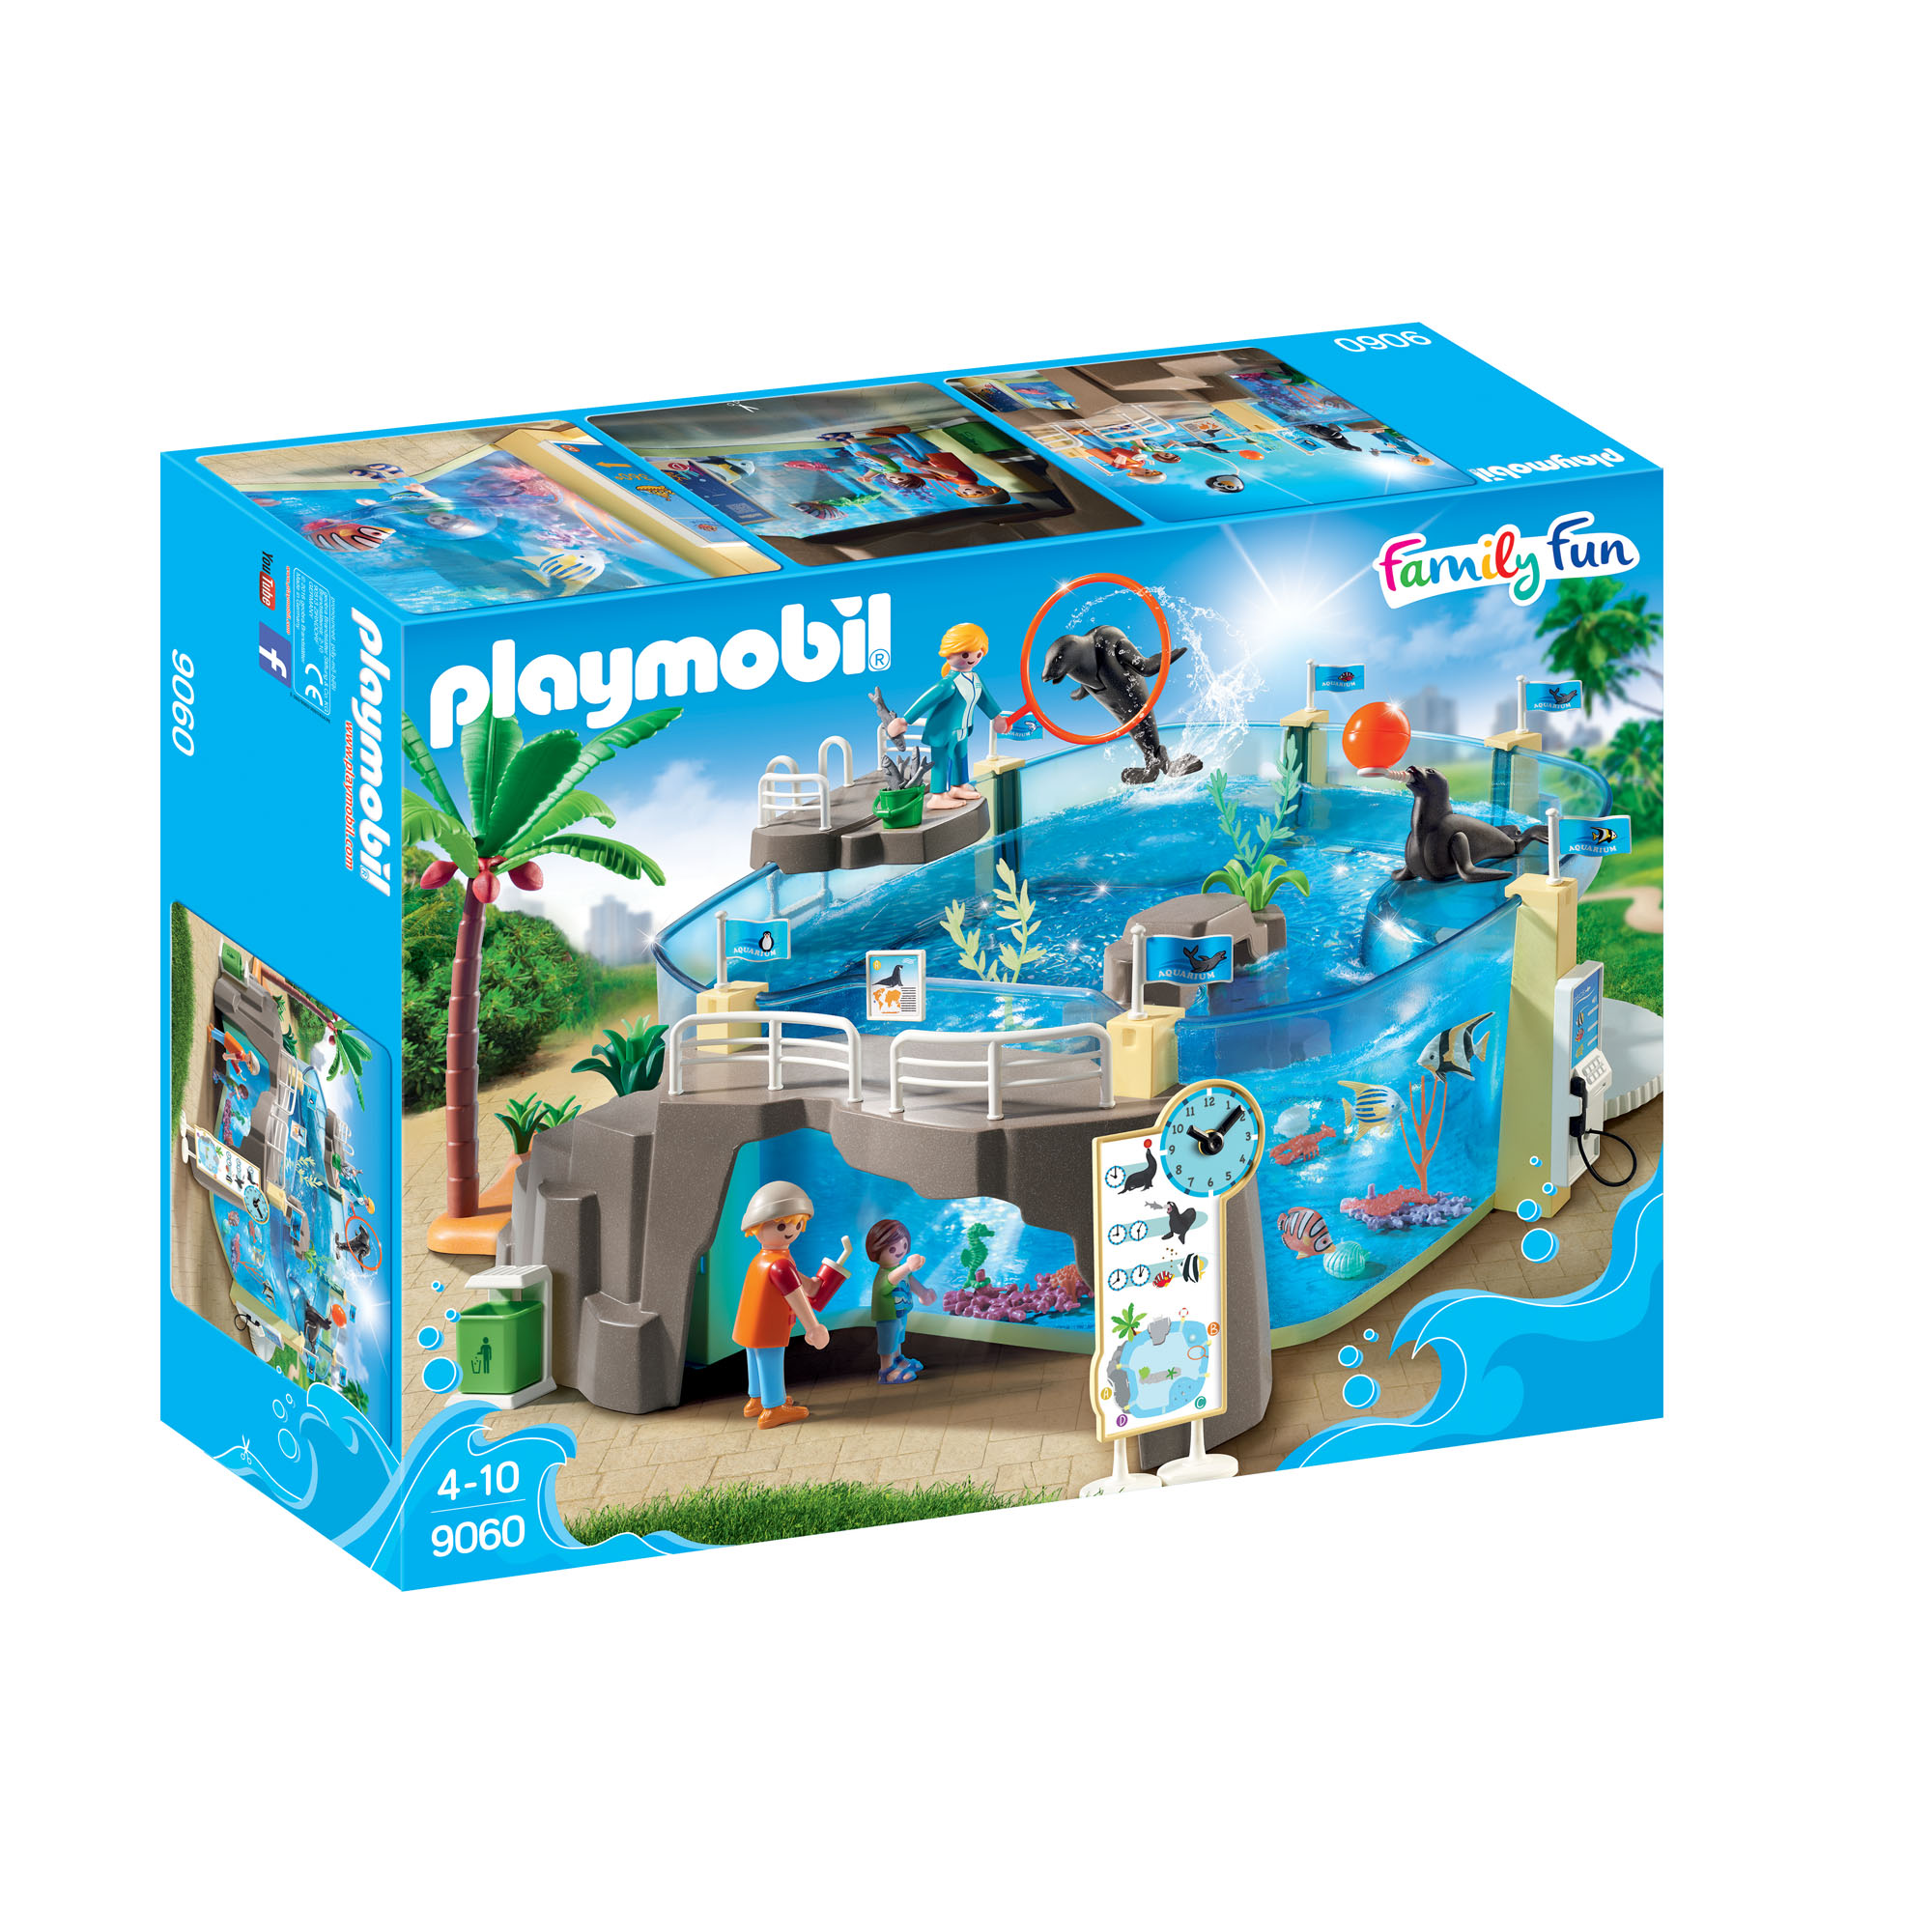 Playmobil Aquarium play set